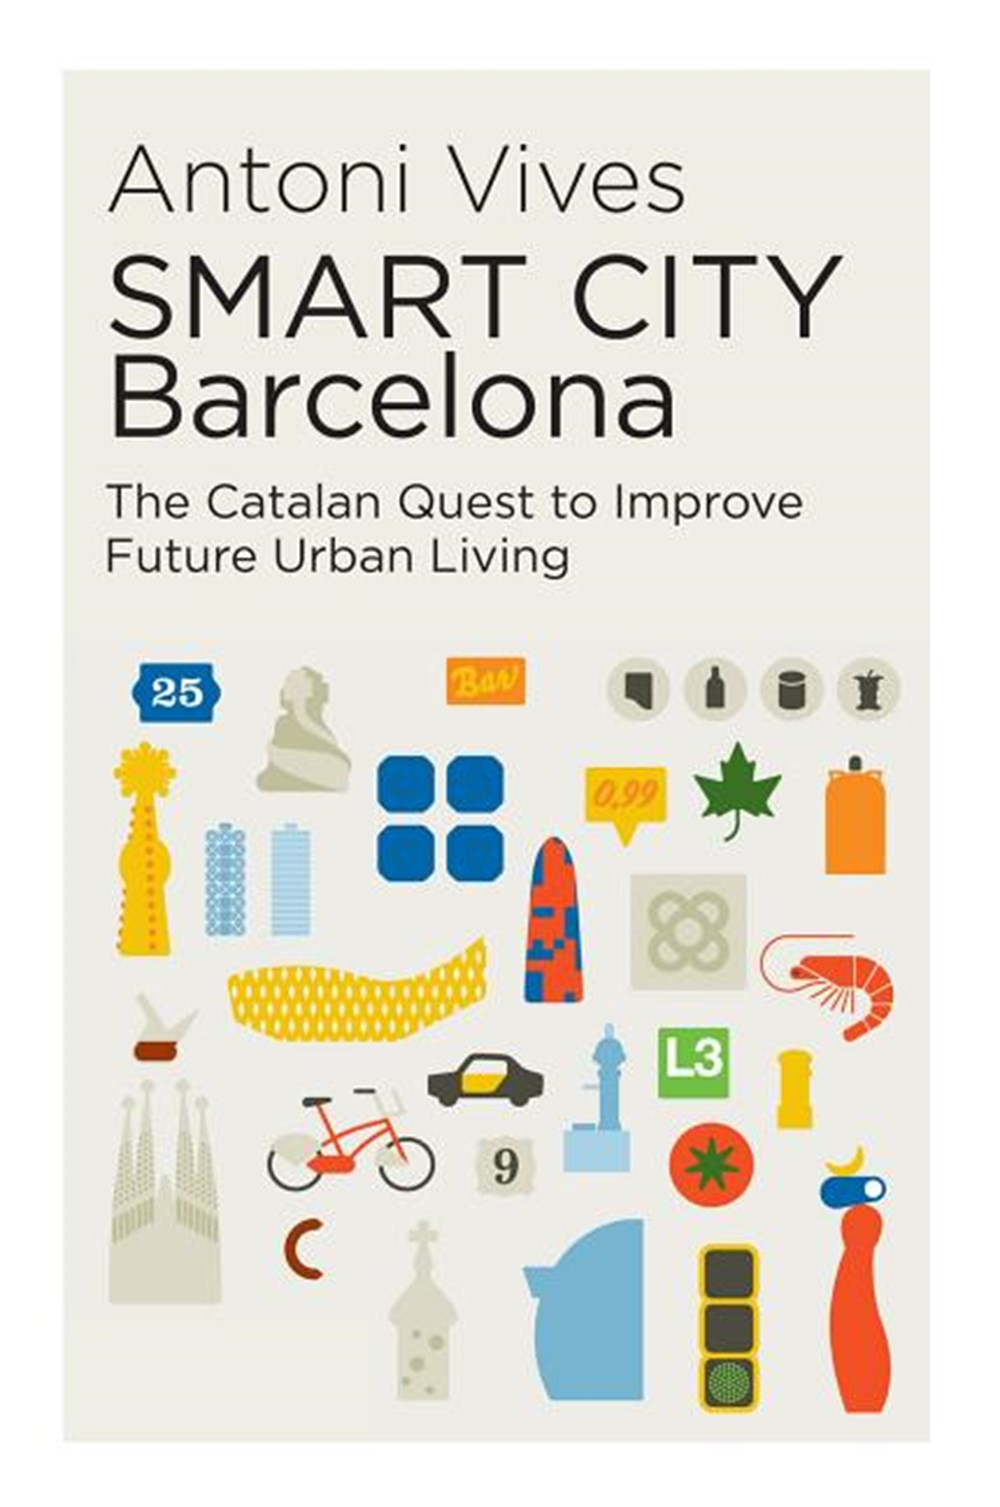 Smart City Barcelona The Catalan Quest to Improve Future Urban Living